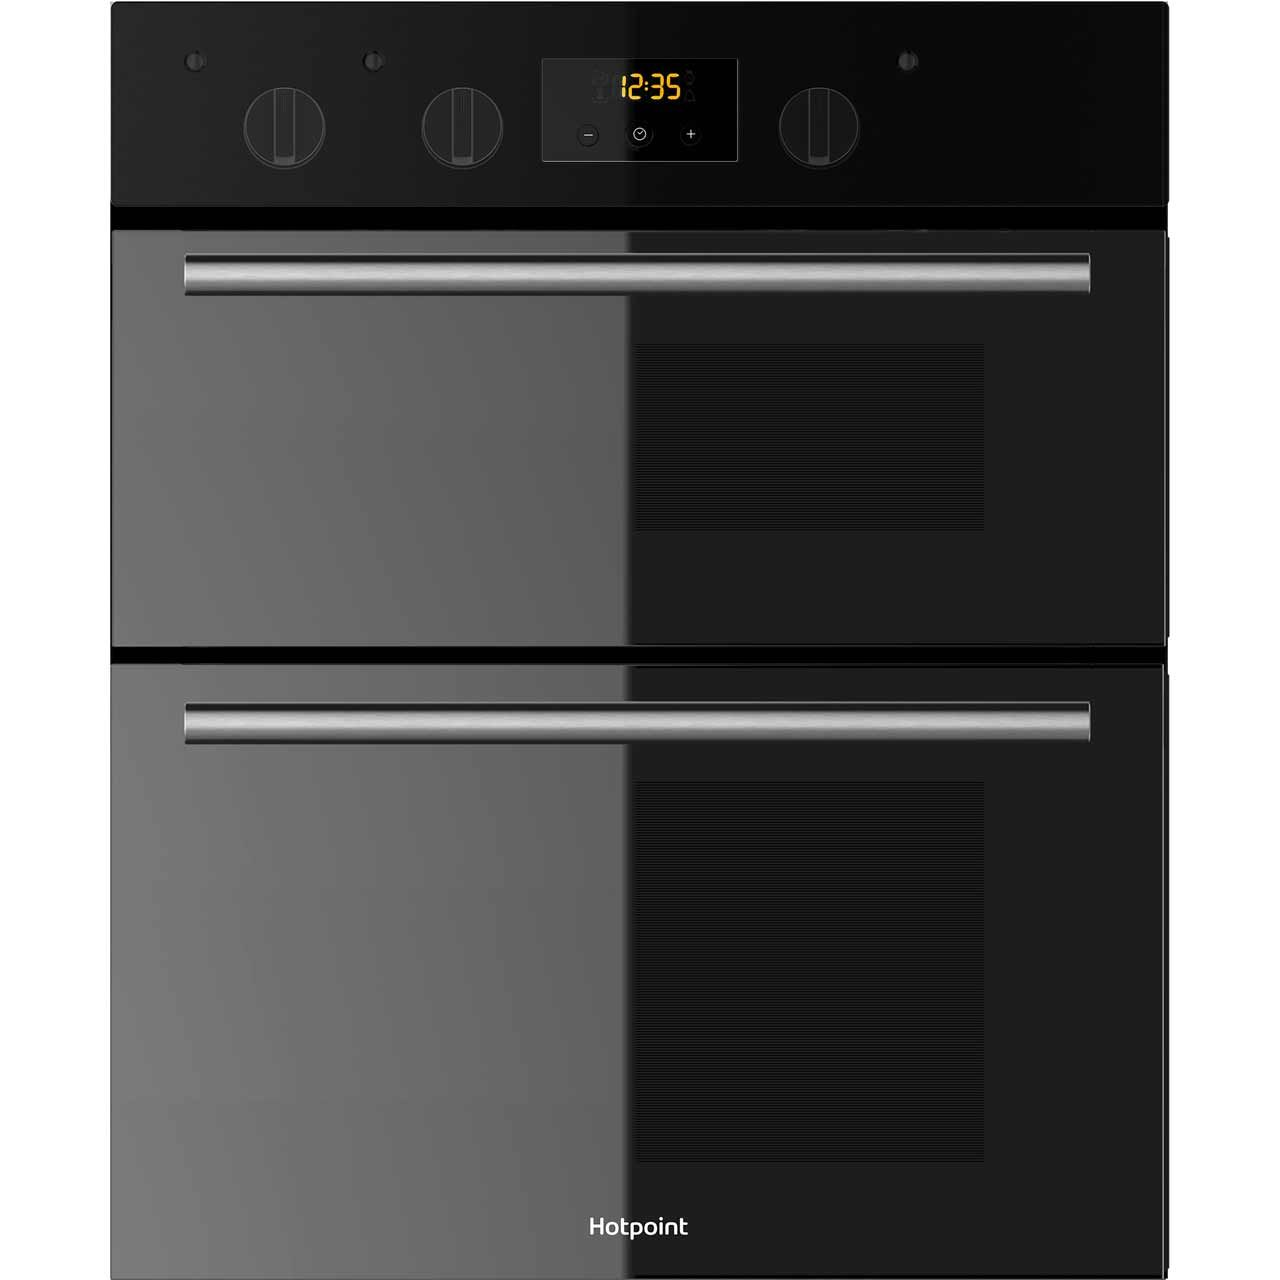 Medium image of du2540bl bk   hotpoint electric double oven   timer   ao com